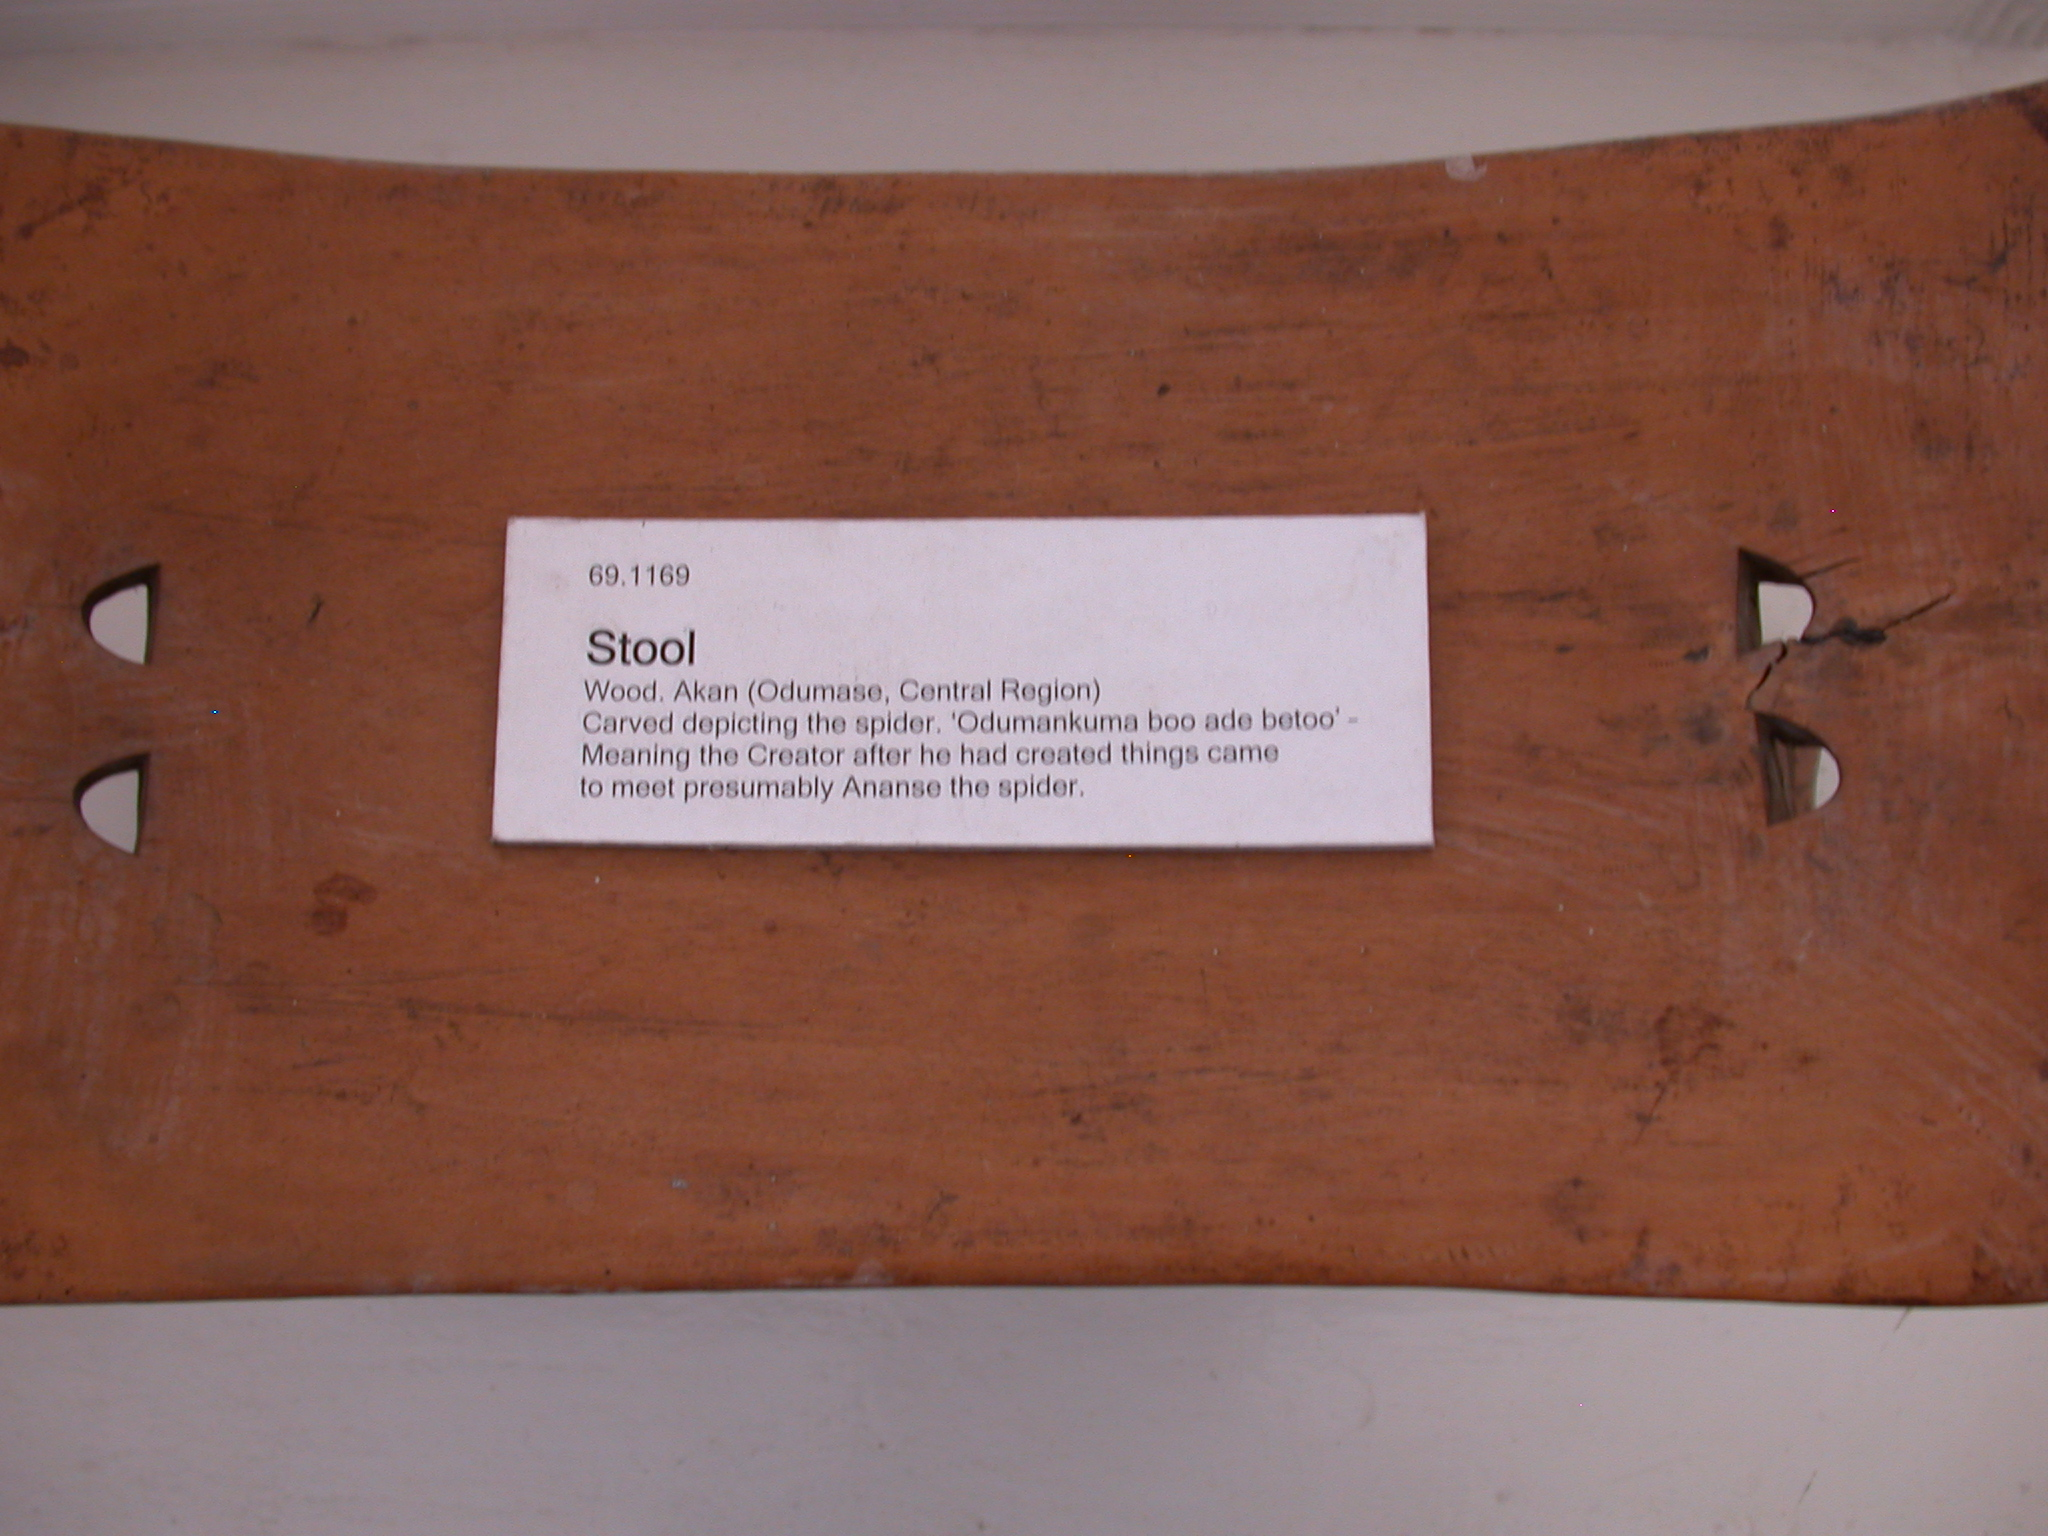 Akan Spider Stool Label, National Museum, Accra, Ghana